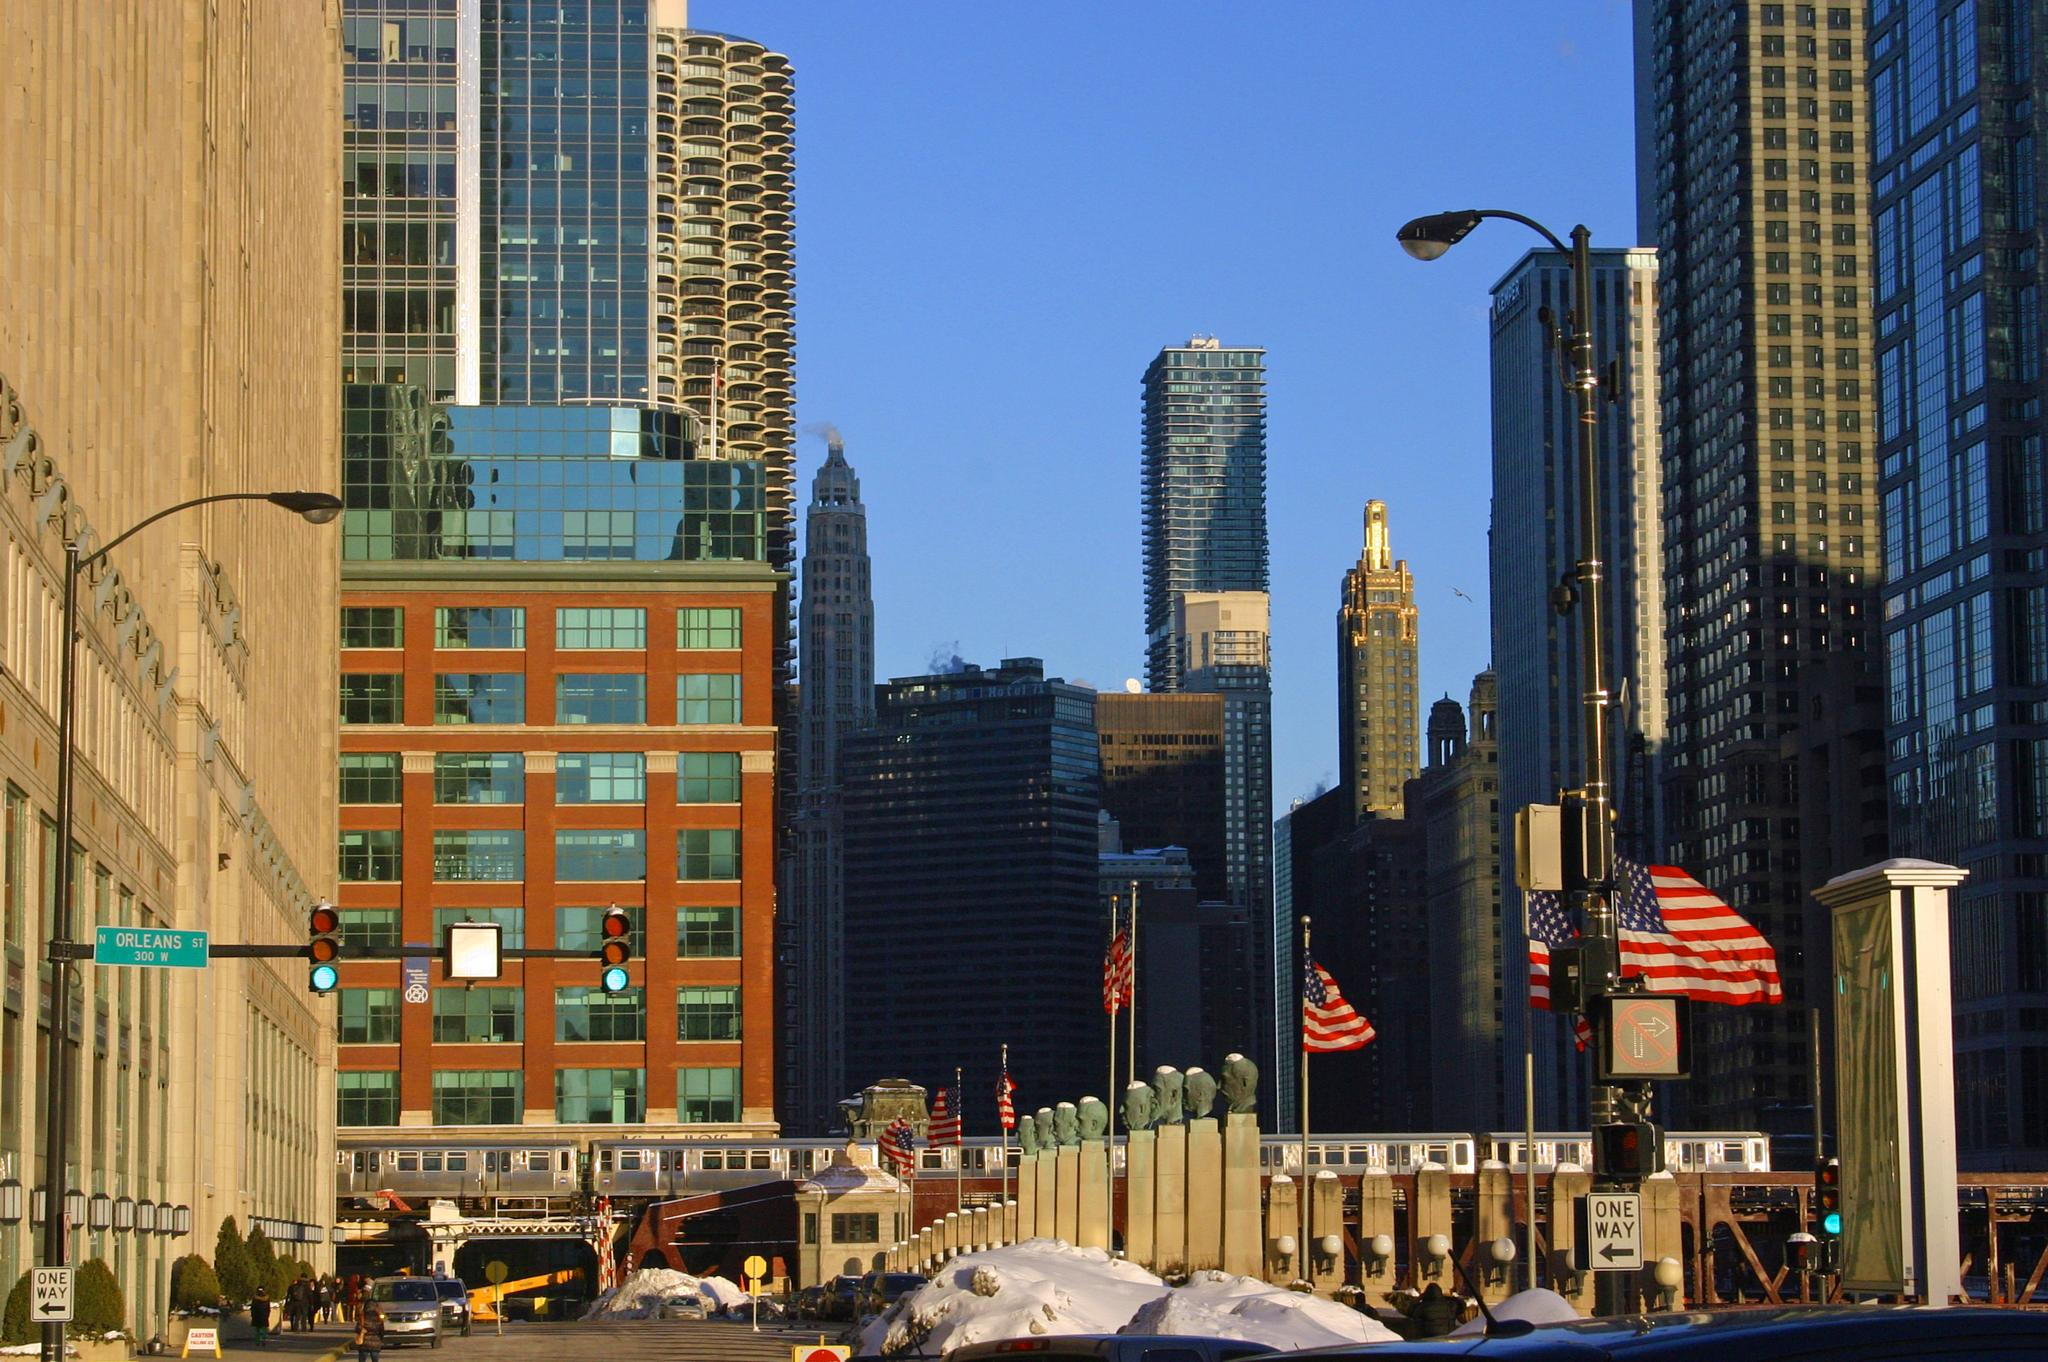 Chicago by fototaker2